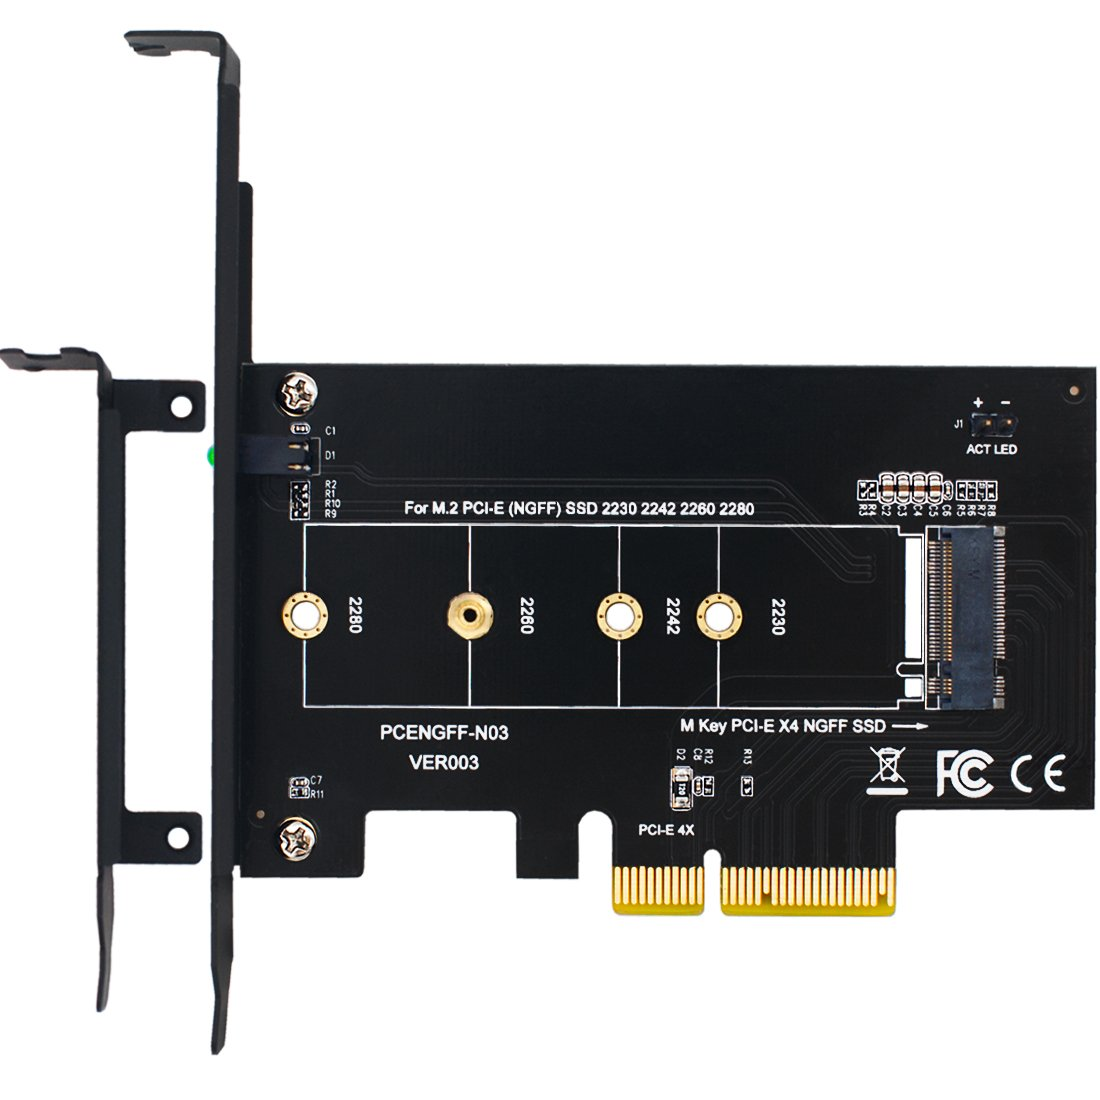 Mailiya M.2 PCIe to PCIe 3.0 x4 Adapter - Support M.2 PCIe 2280, 2260, 2242, 2230